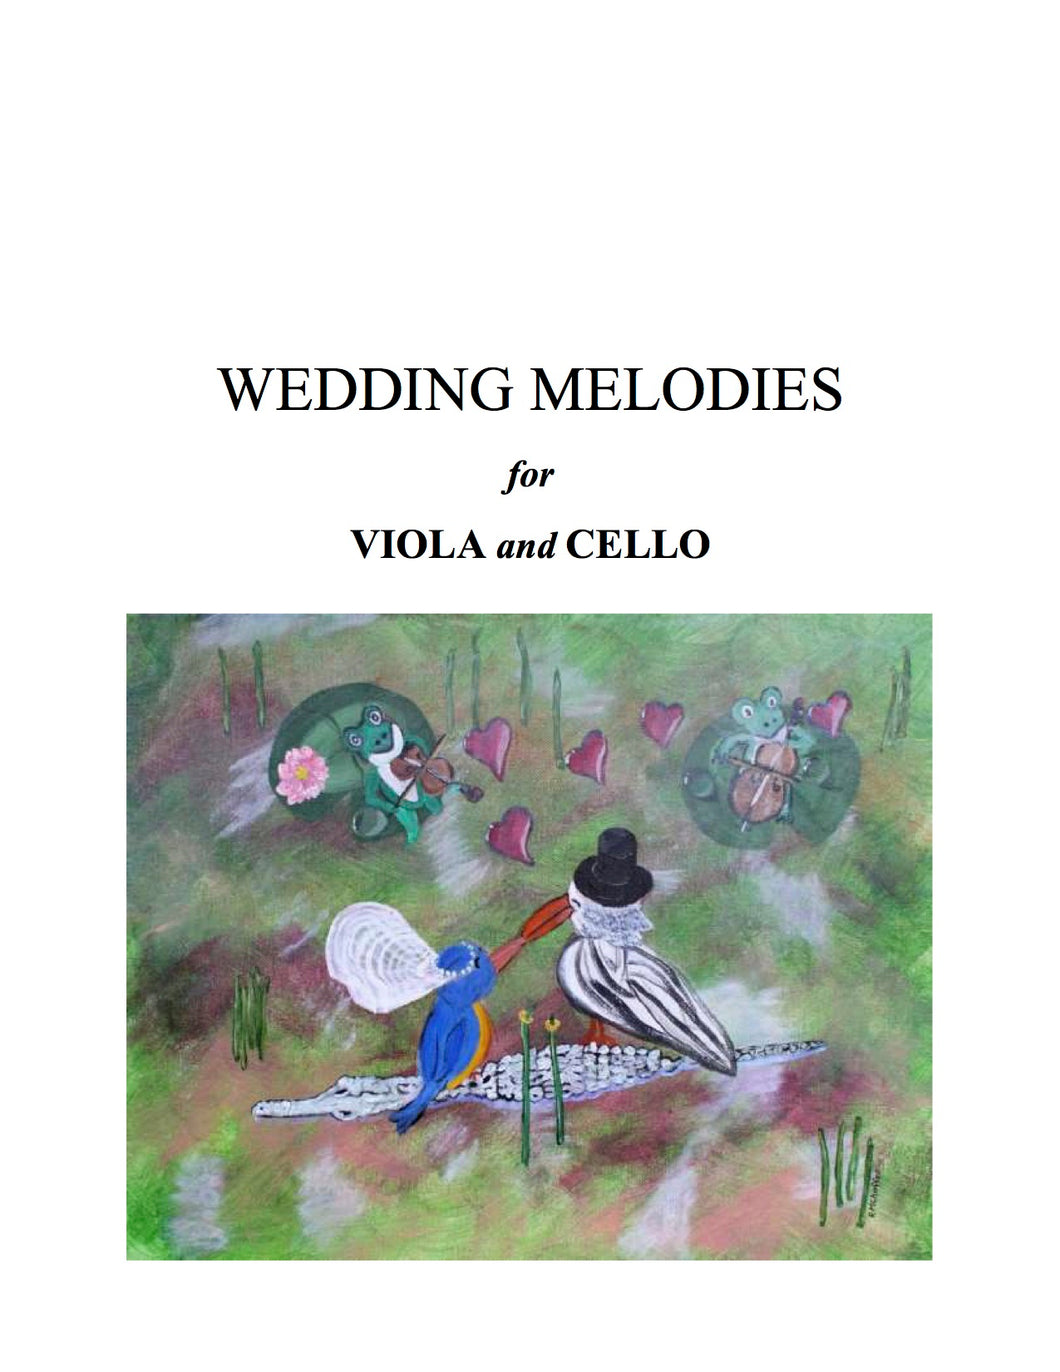 059 - Wedding Melodies For Viola and Cello